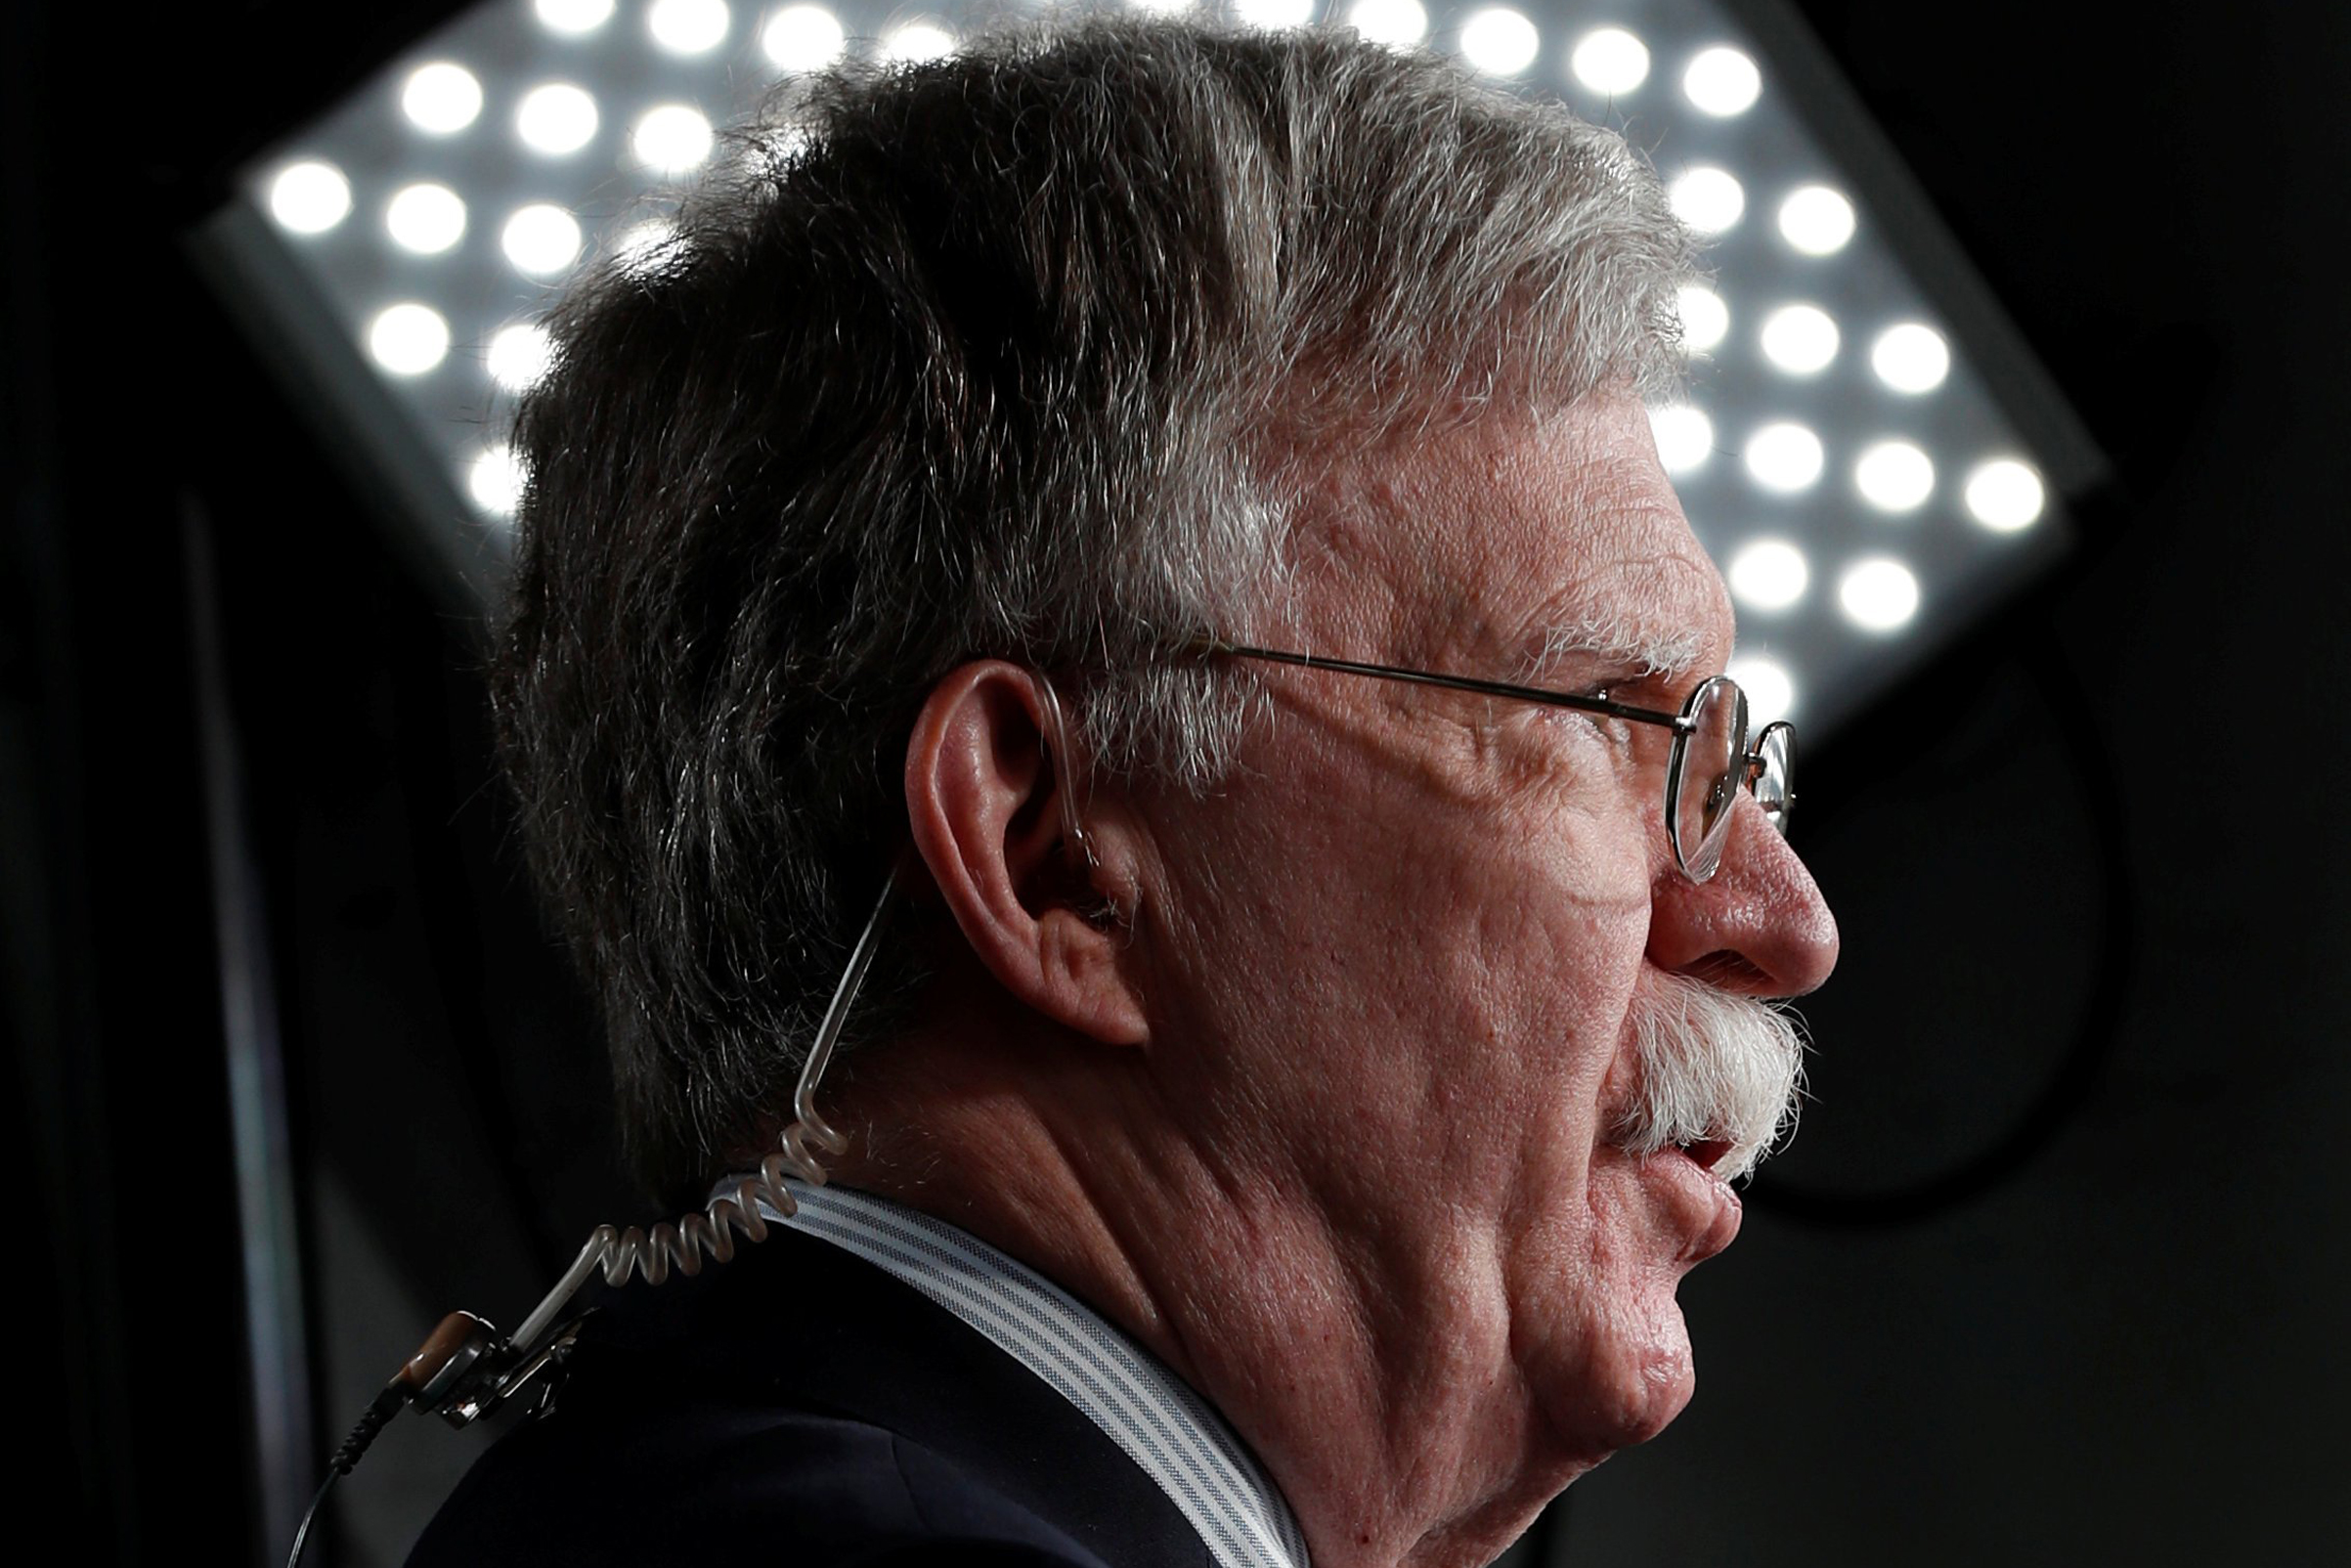 John Bolton, the national security advisor, speaks in front of a television camera at the White House in Washington on May 1, 2019.